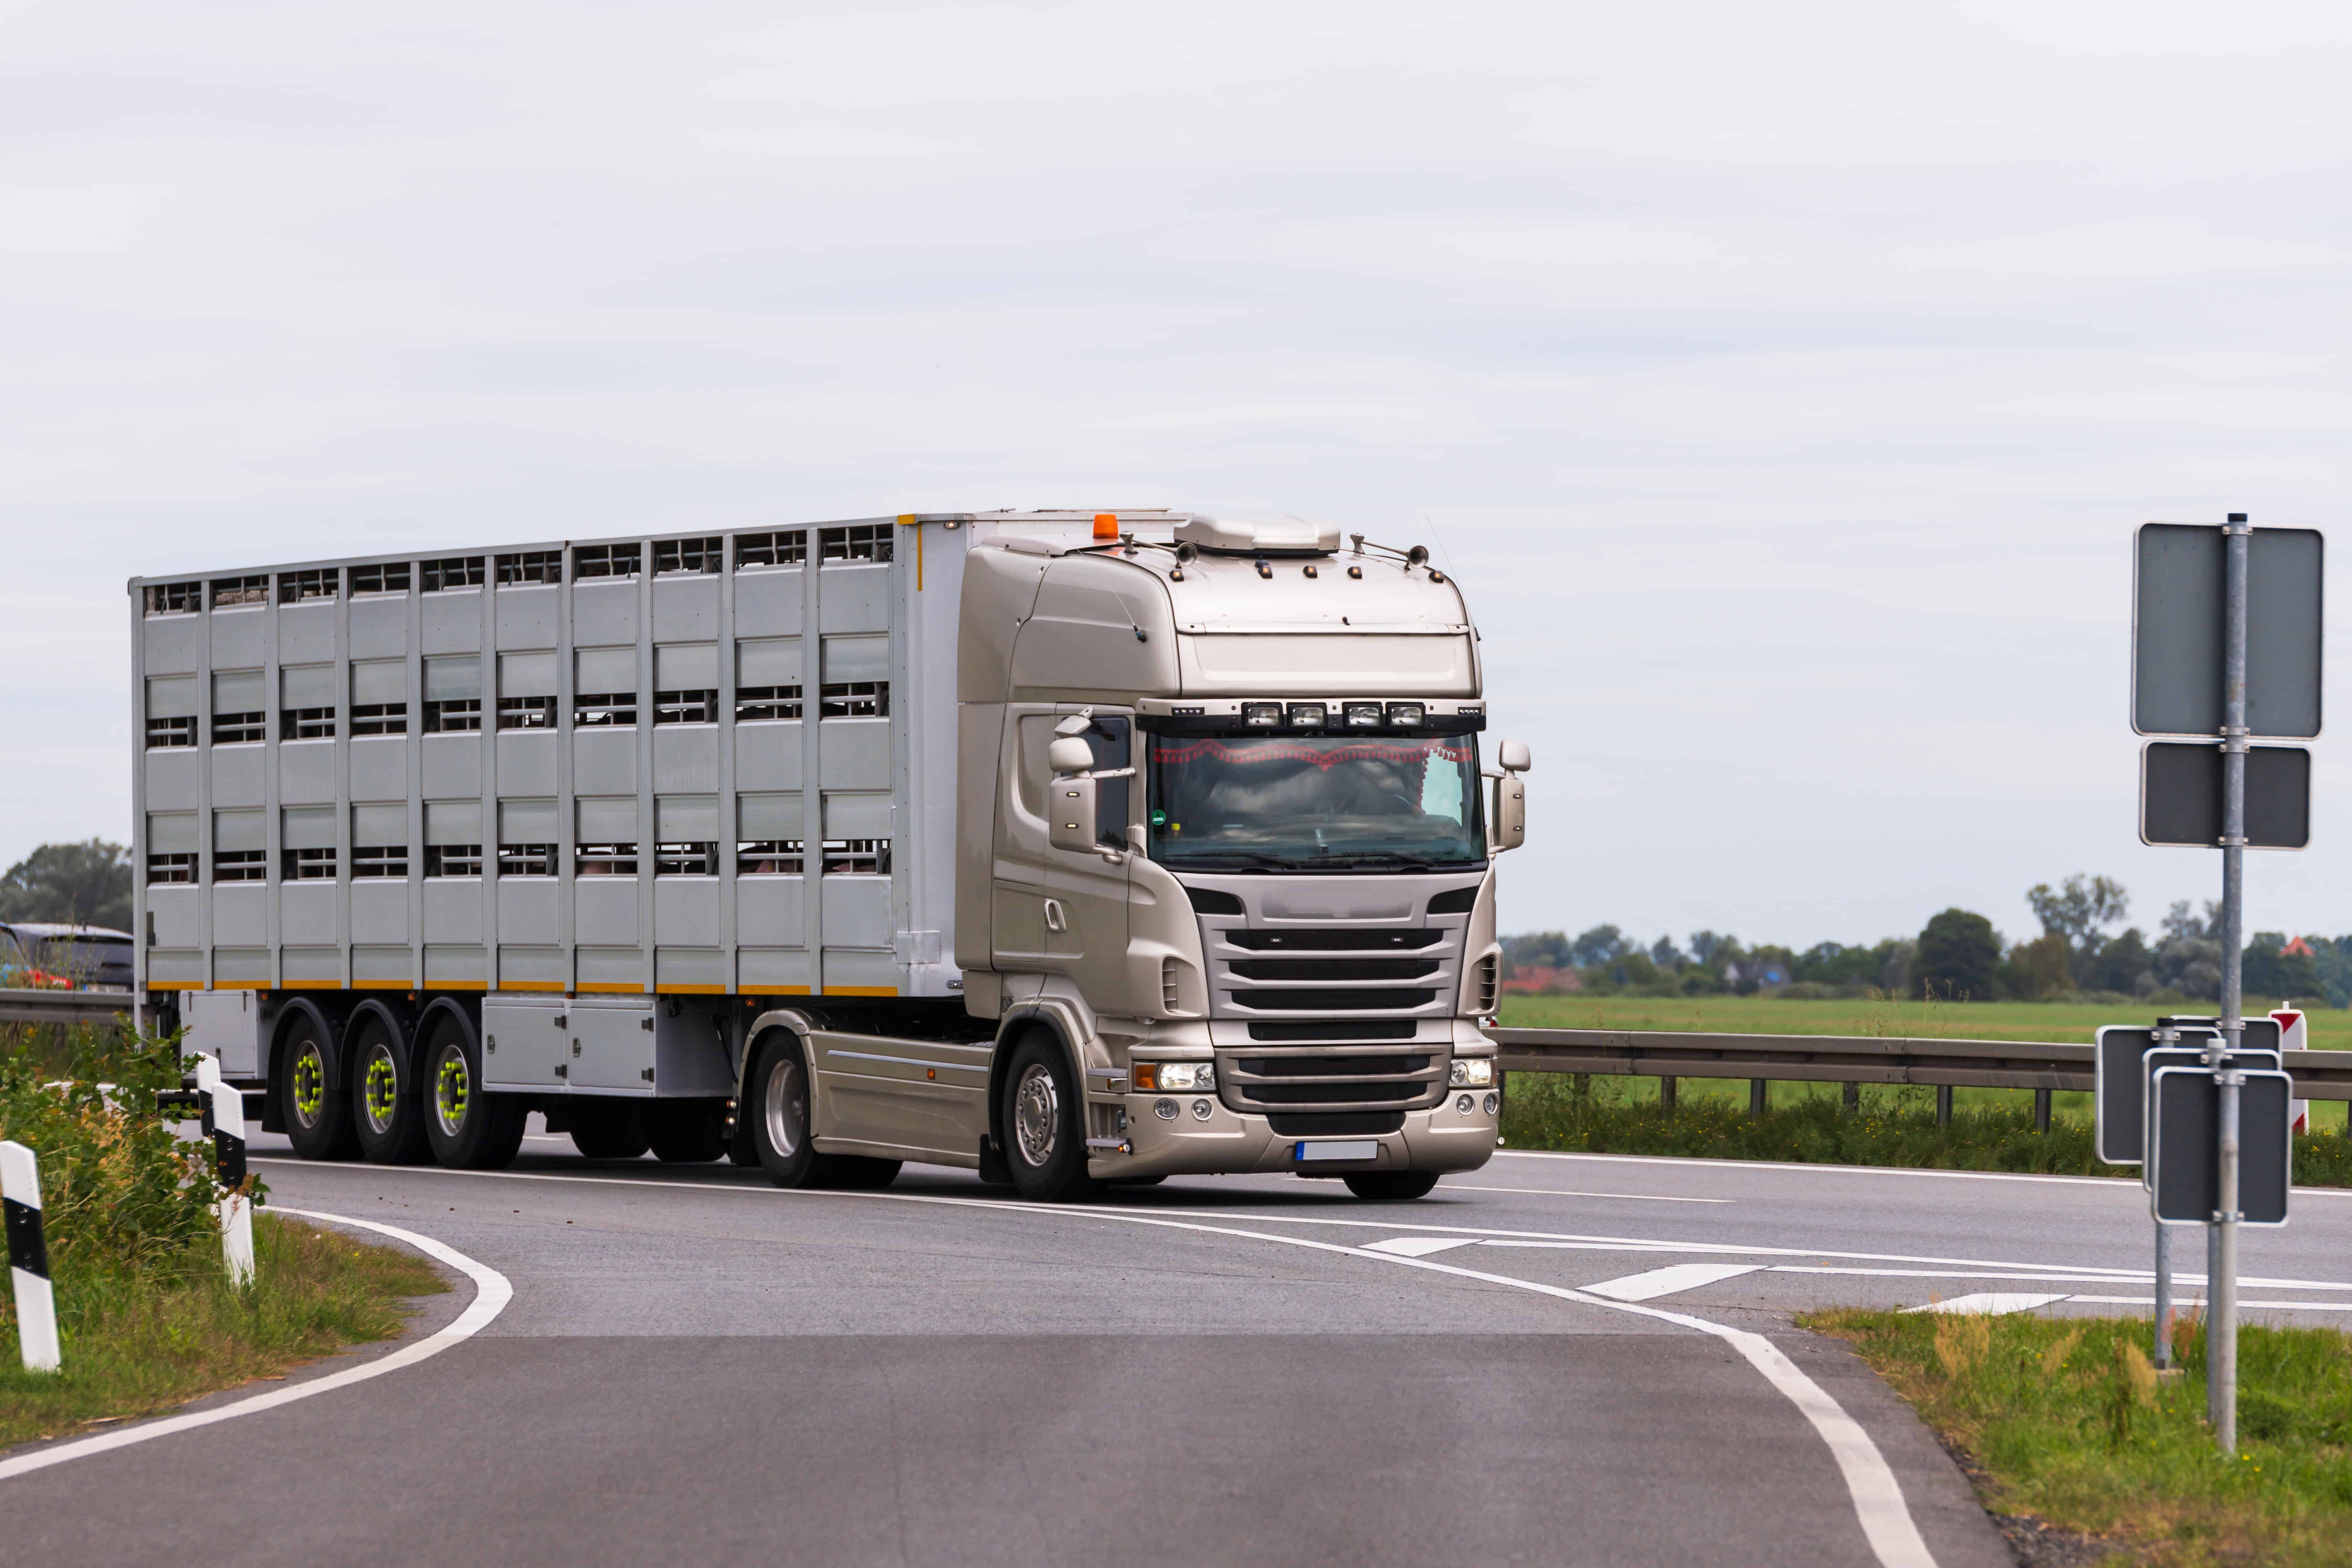 Level 2 Award in Animal Transport by Road - Short Journey Ofqual Qualification number 501/1738